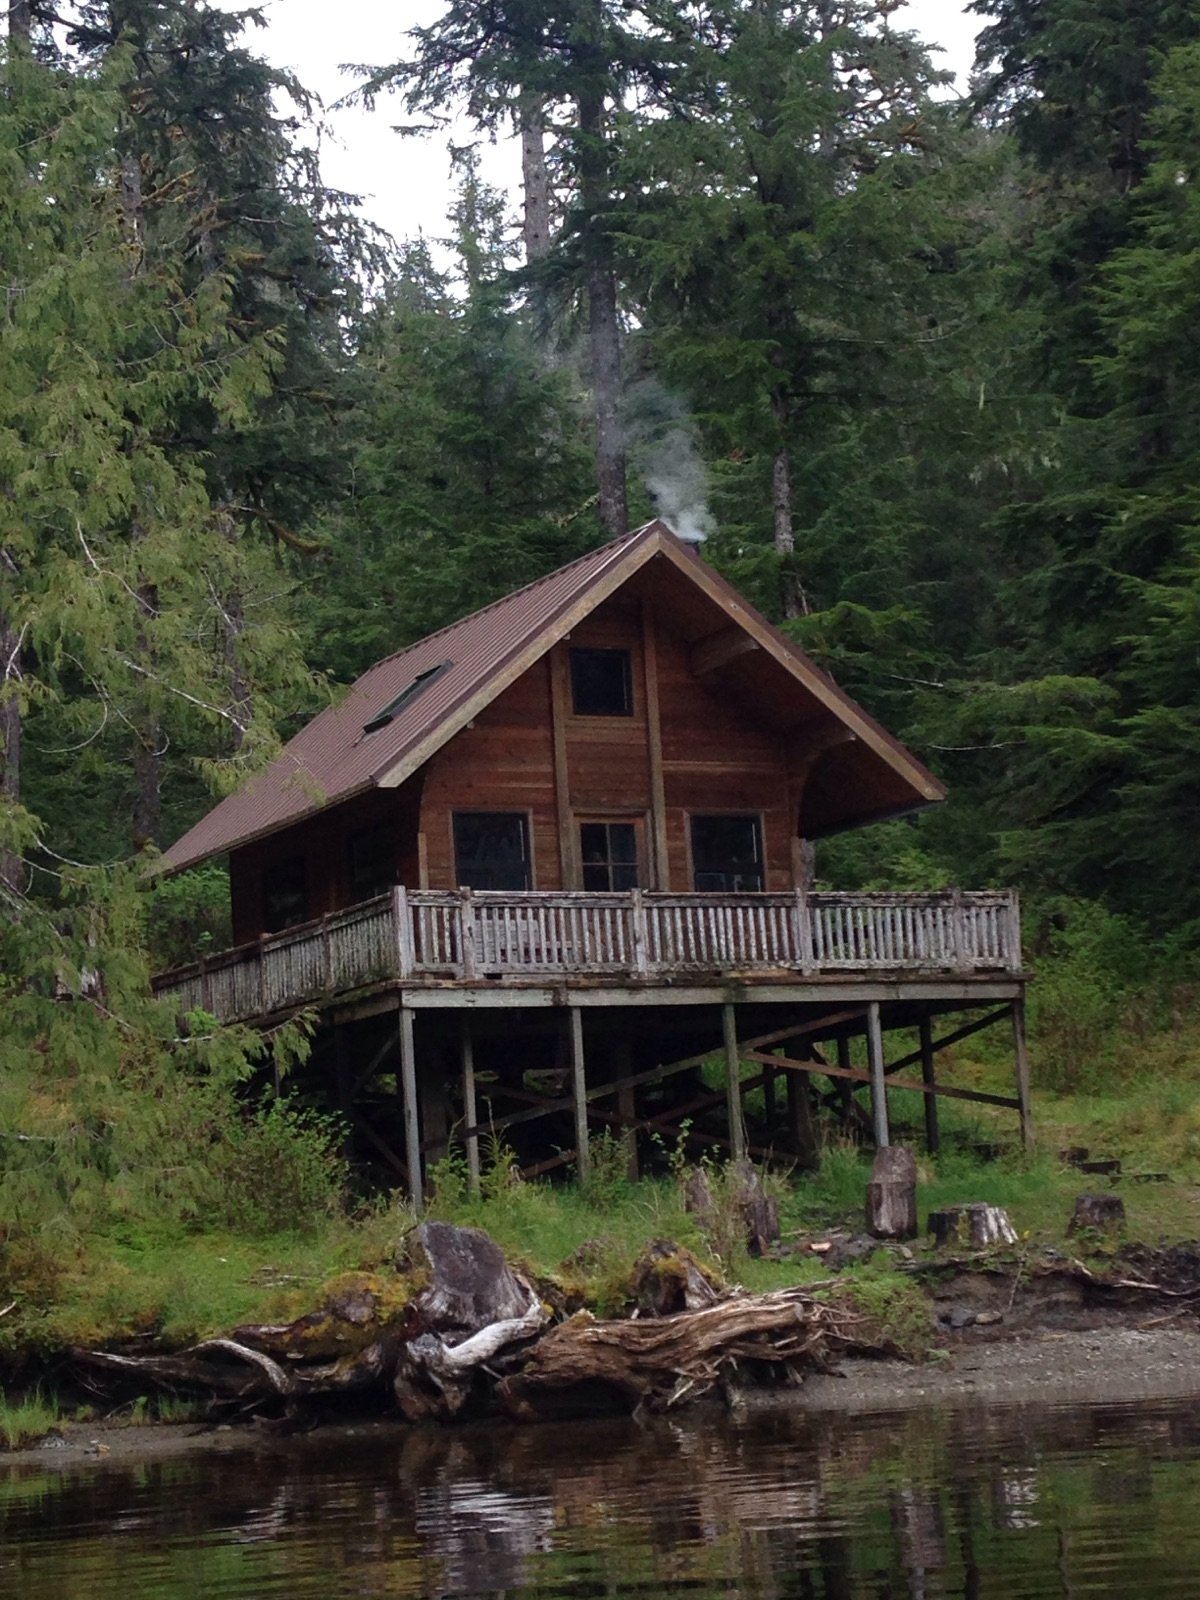 THE  RED BAY LAKE RENTAL CABIN  IS ONE OF MANY FOREST SERVICE RUSTIC CABINS AVAILABLE FOR RENT. IMAGE: COURTESY OF LUKE.